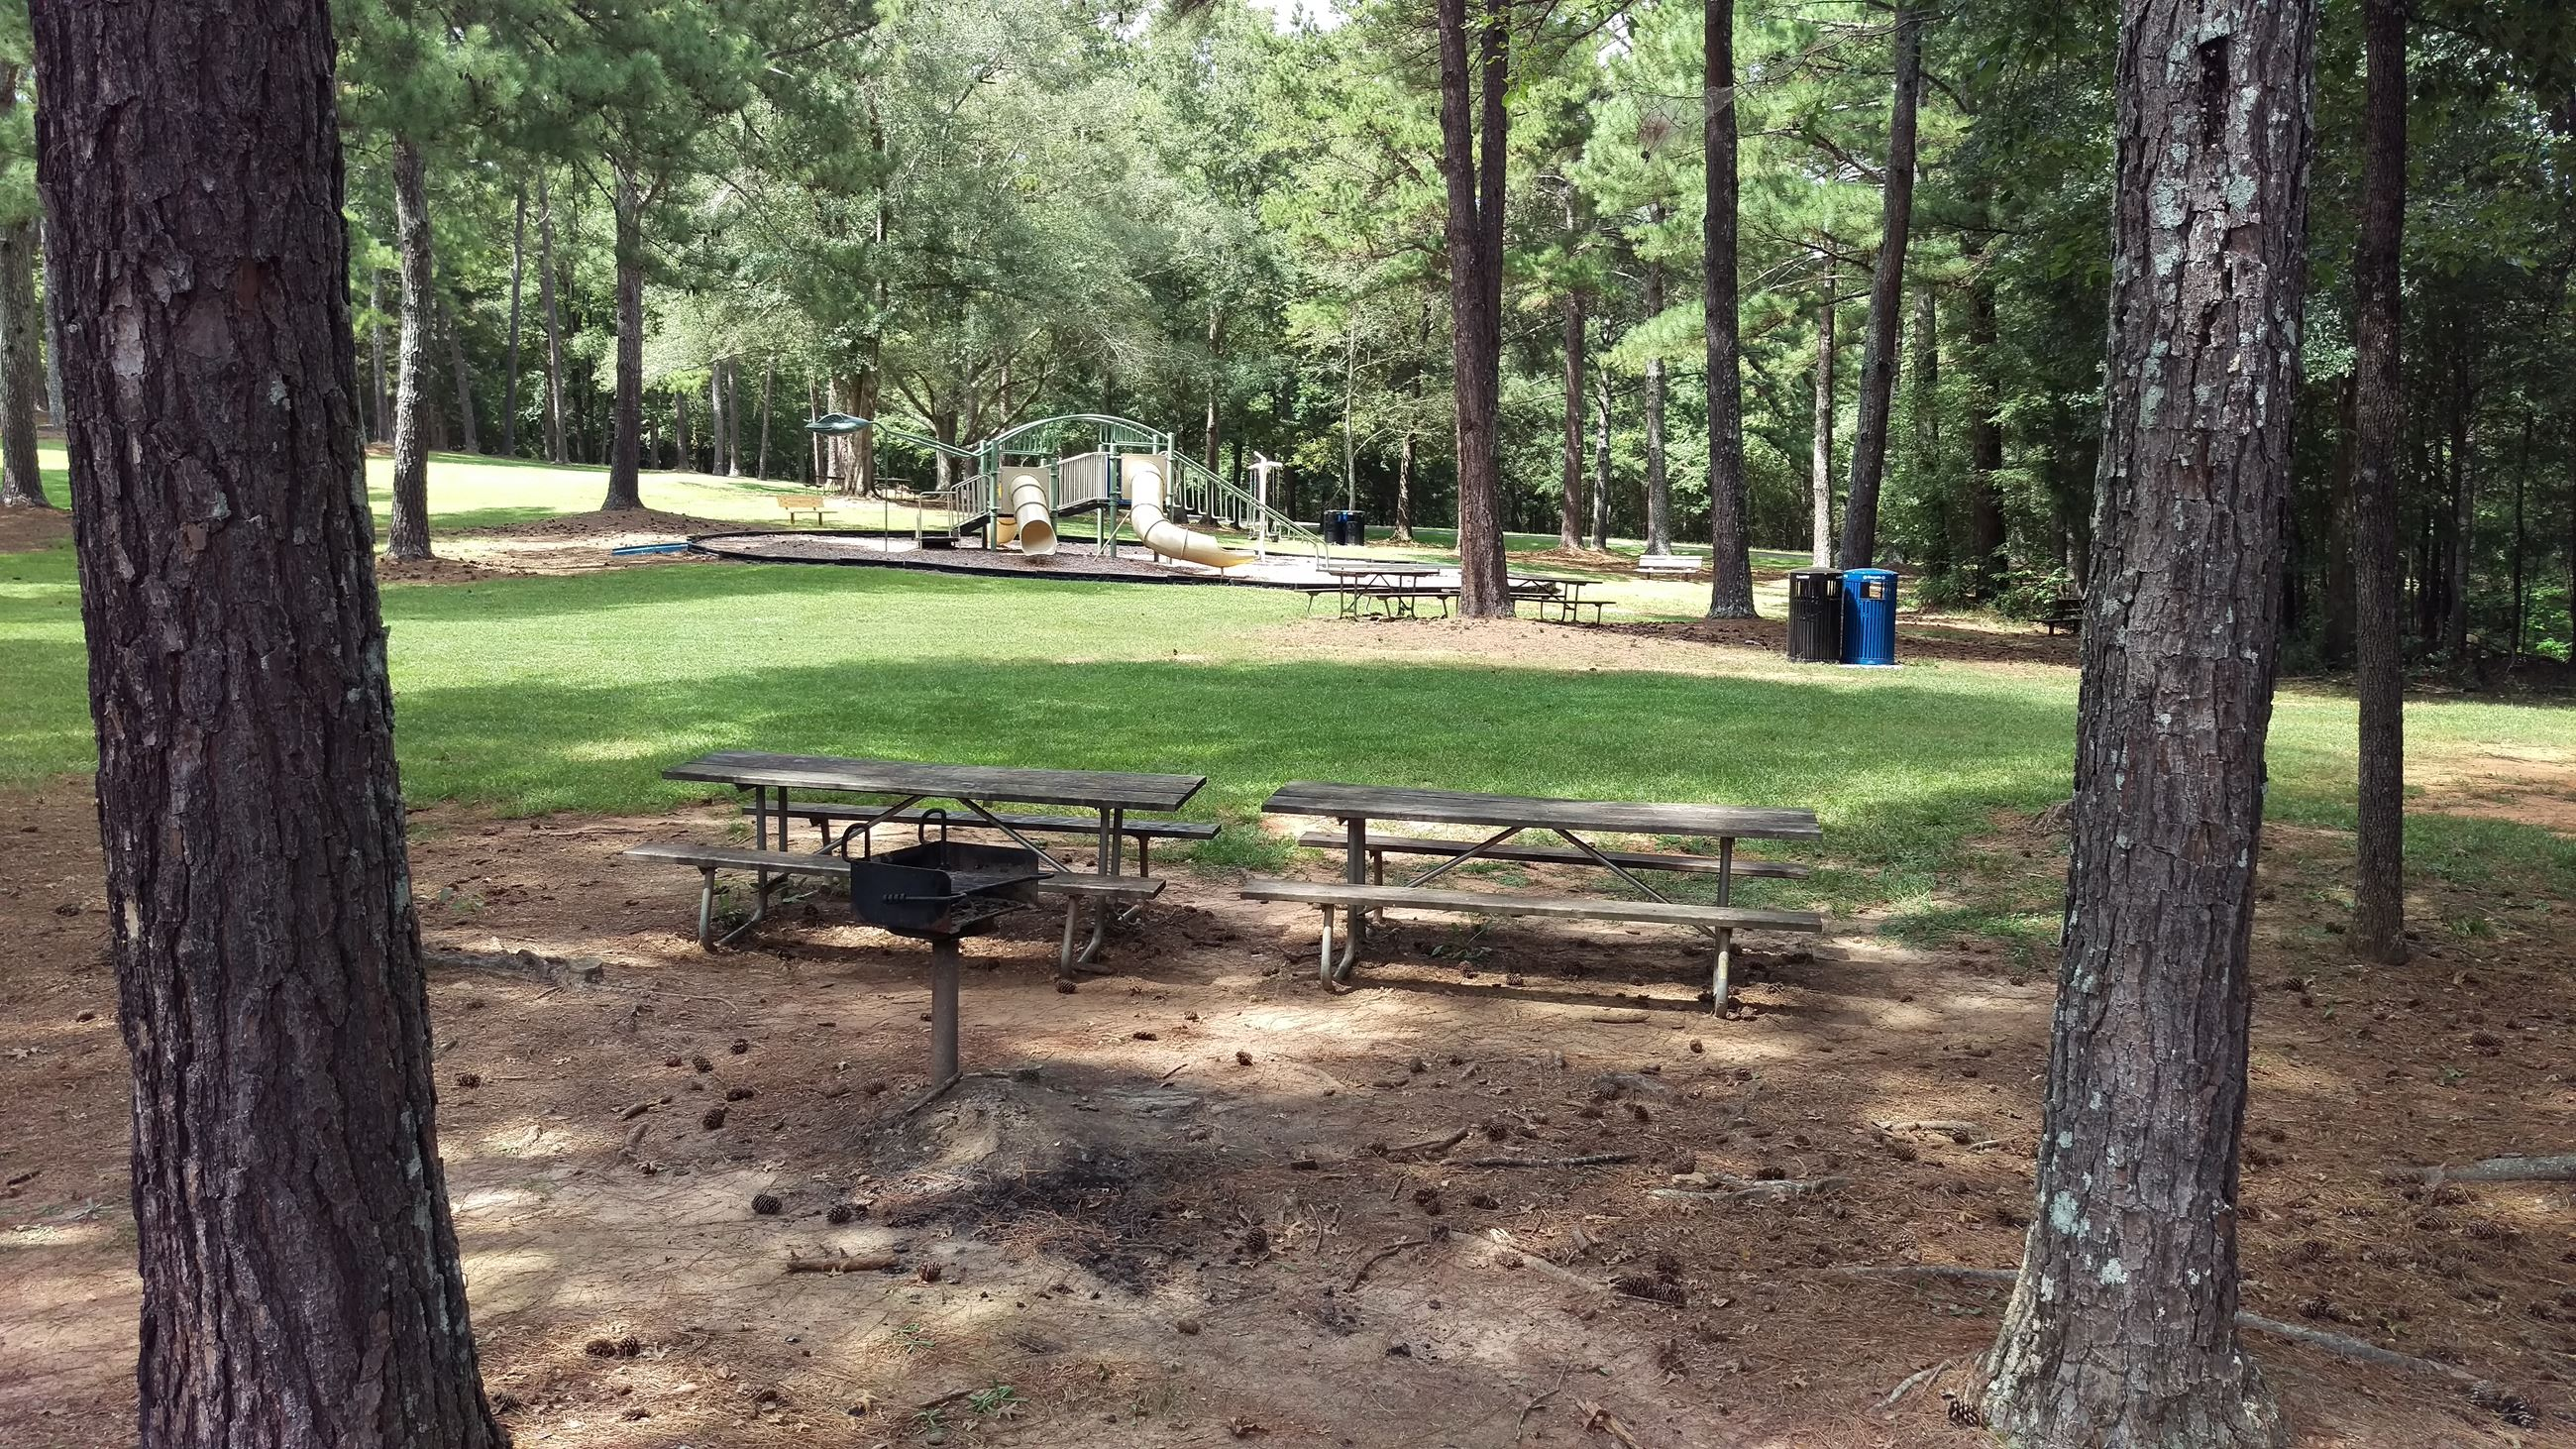 Photo of Picnic Area 5 at Sandy Creek Park.